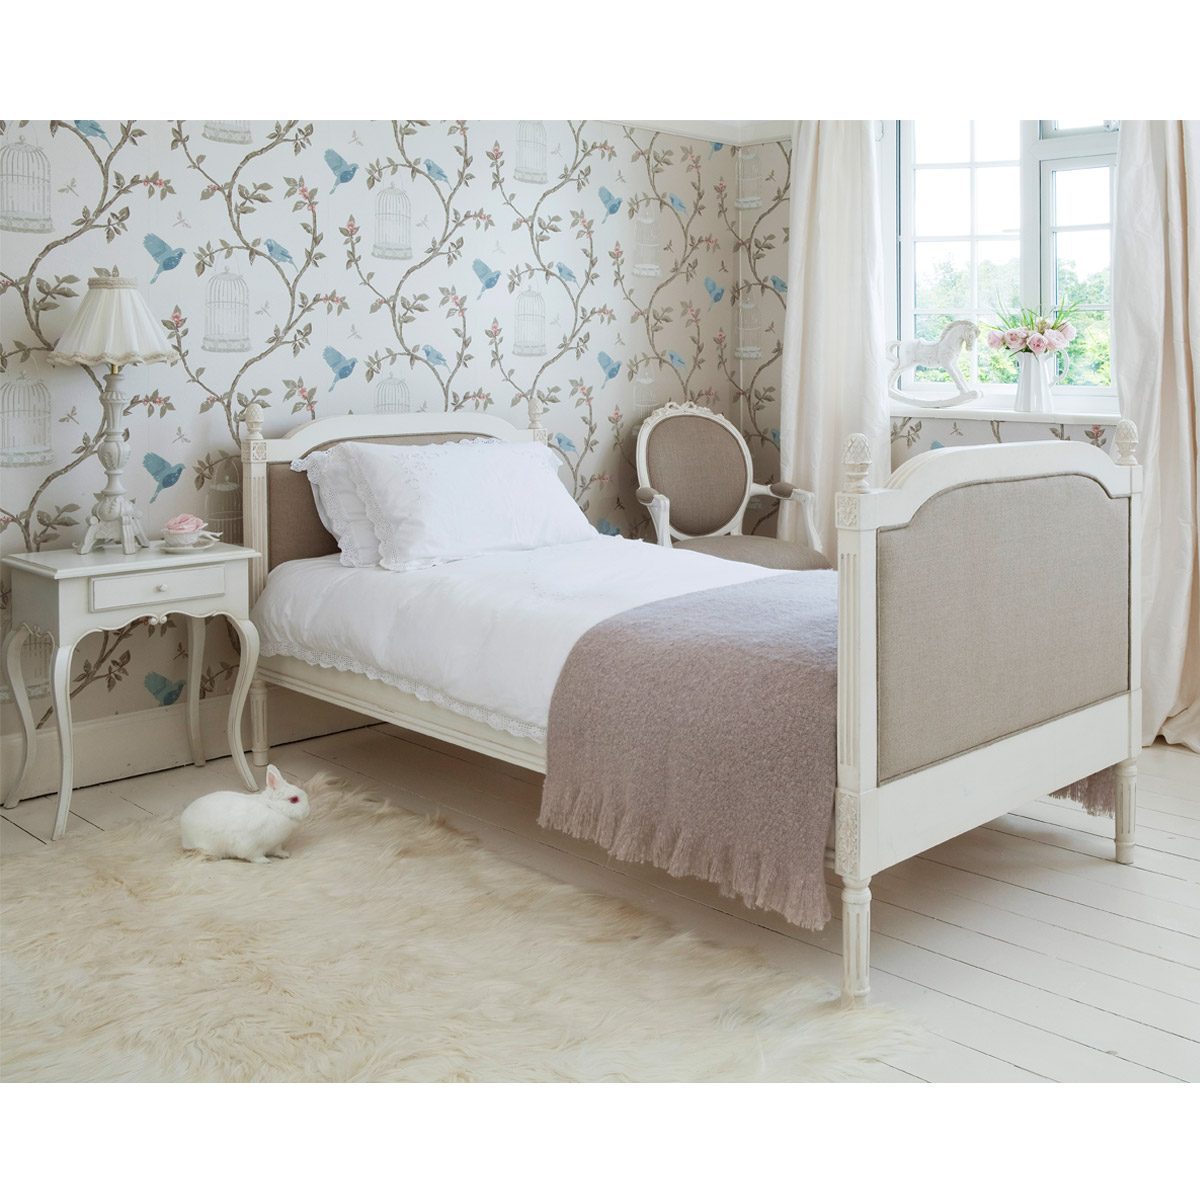 Provencal linen single bed french bedroom company for Images of beds for bedroom